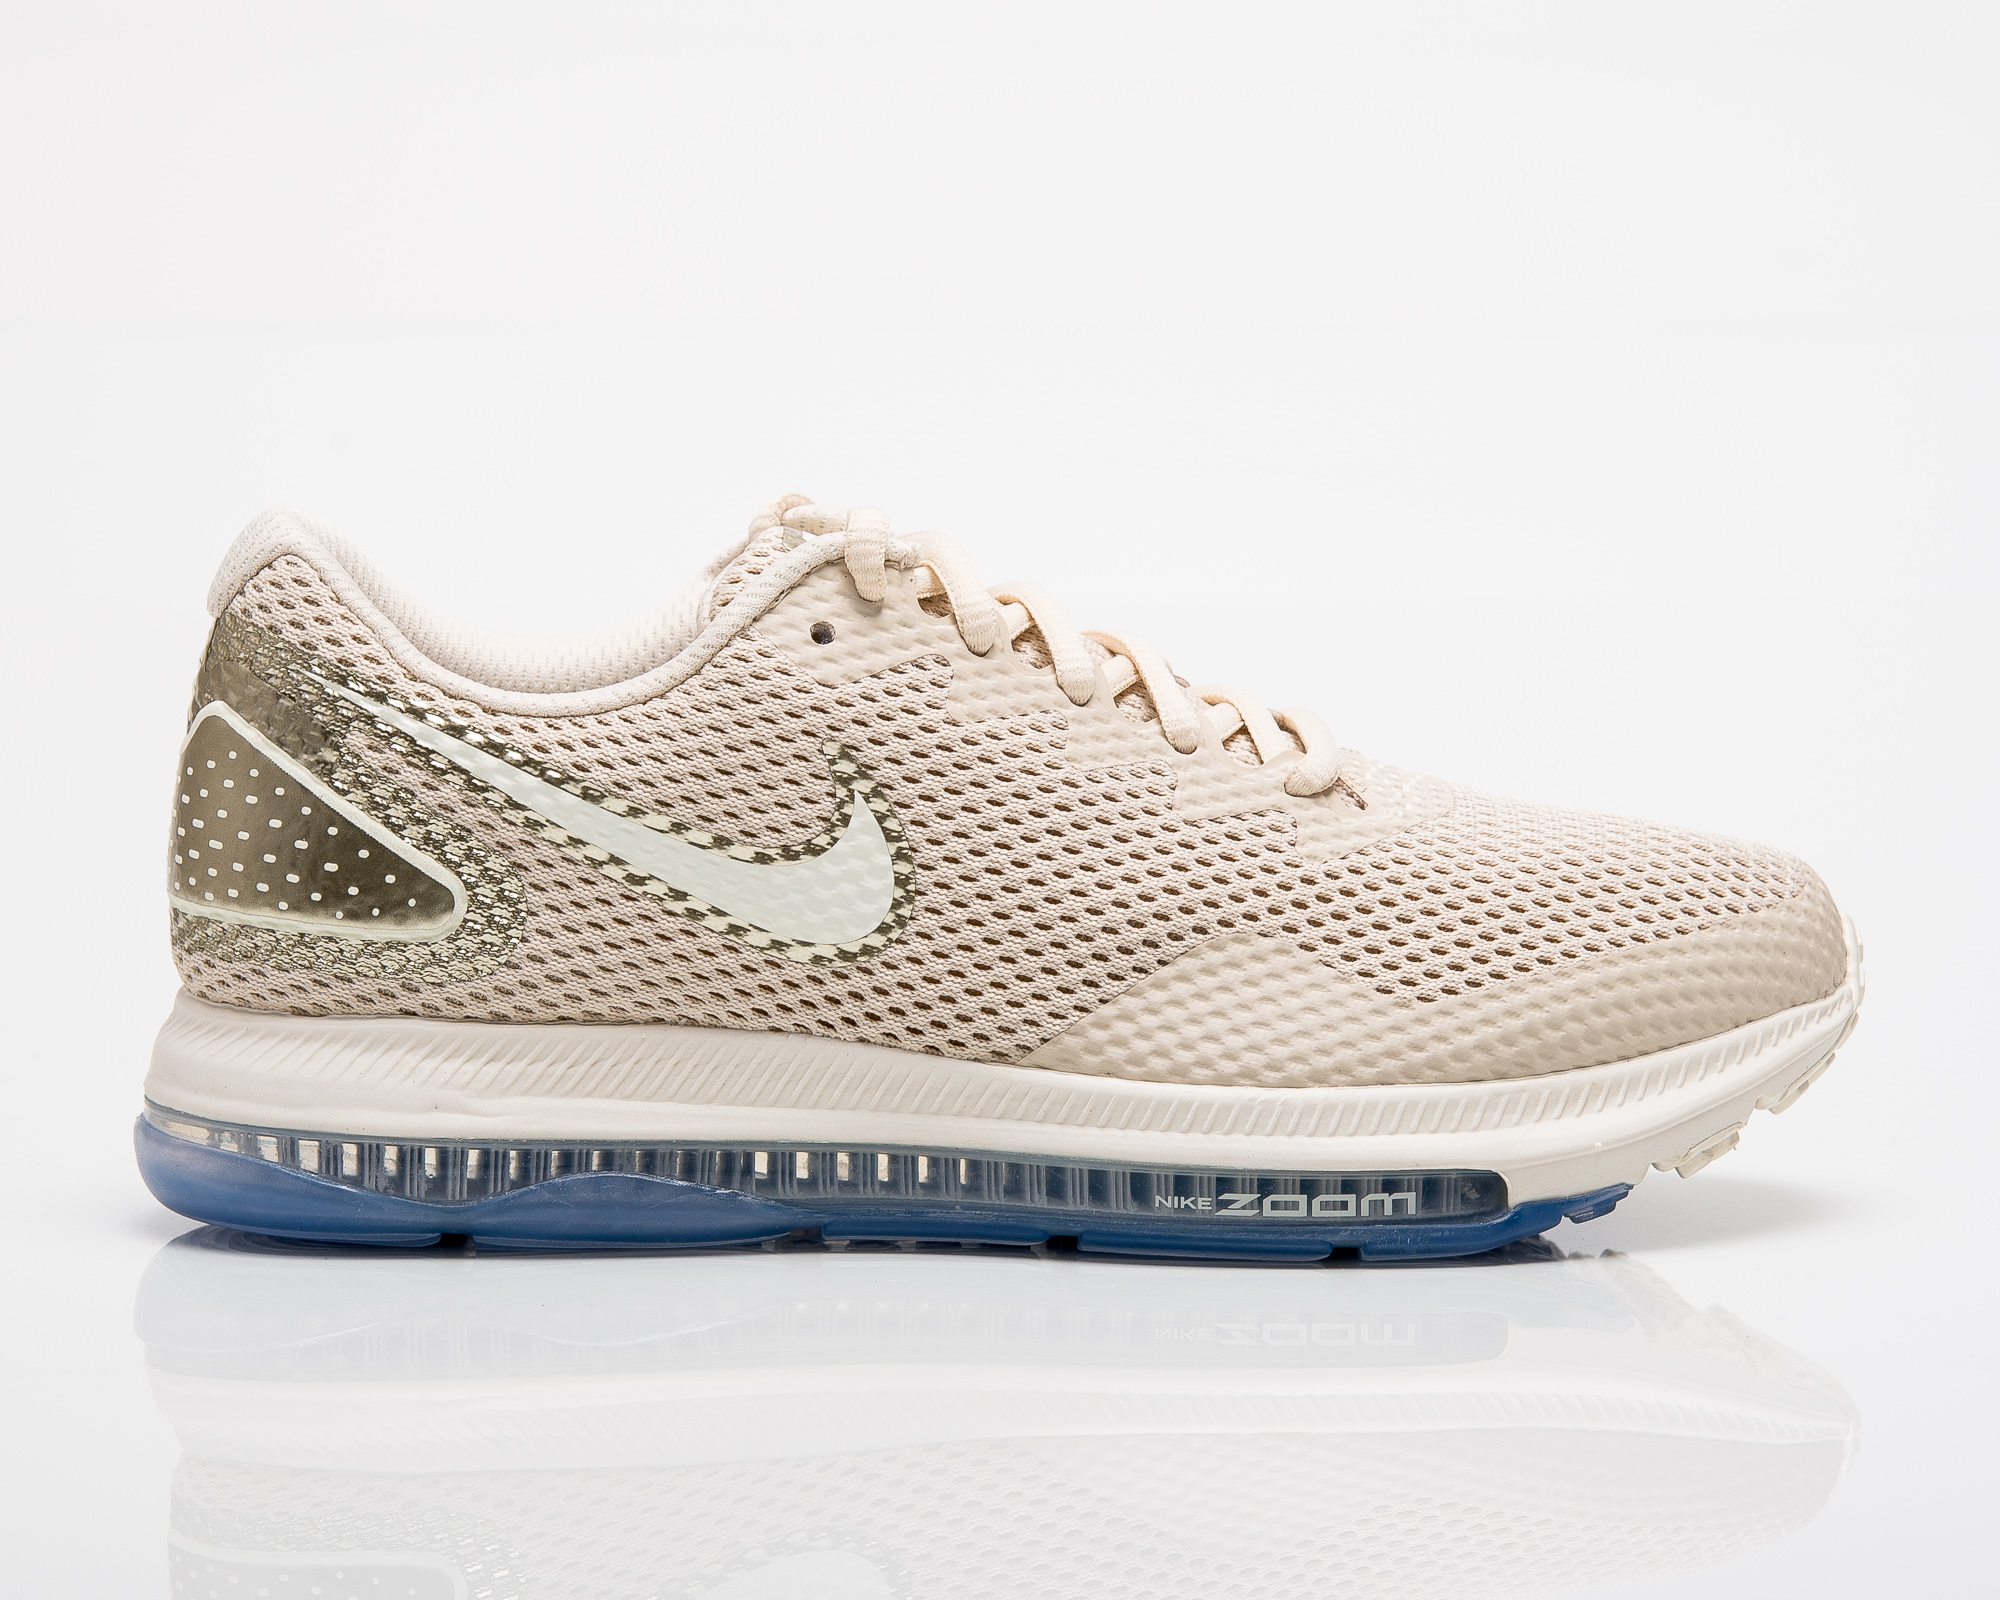 b43c5fce1a3d Nike Wmns Zoom All Out Low 2 - Shoes Running - Sporting goods